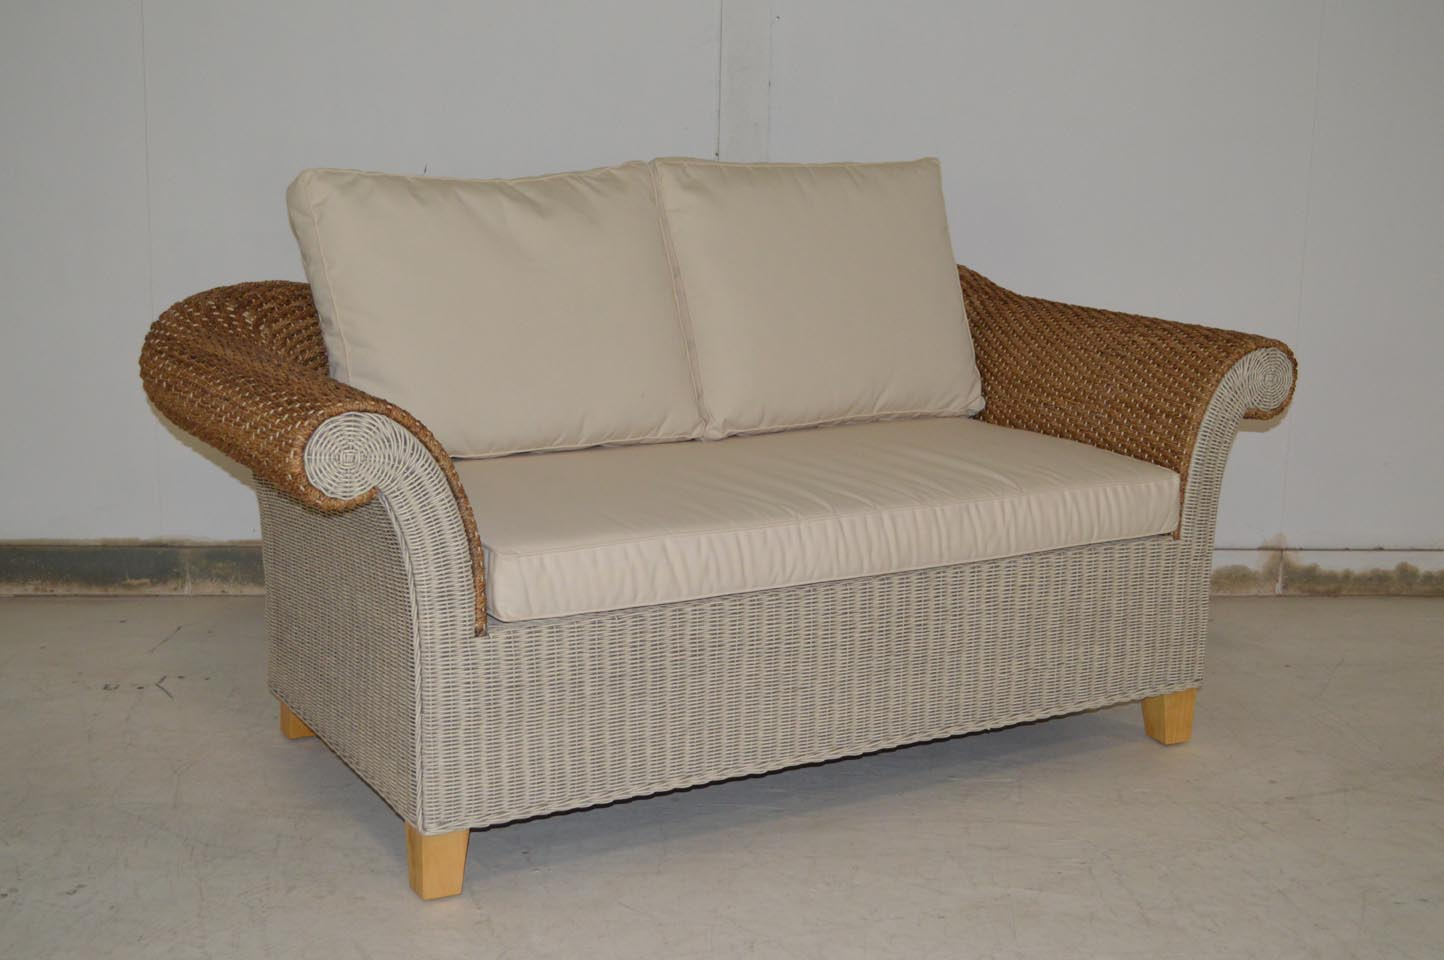 Rattan Furniture Export Industry From Cirebon Indonesia Pad Cantik Privacy Statement And Legal Notices Are Copyrighted 2010 15 By Art Design Teguh It Consultant Armando Razalie